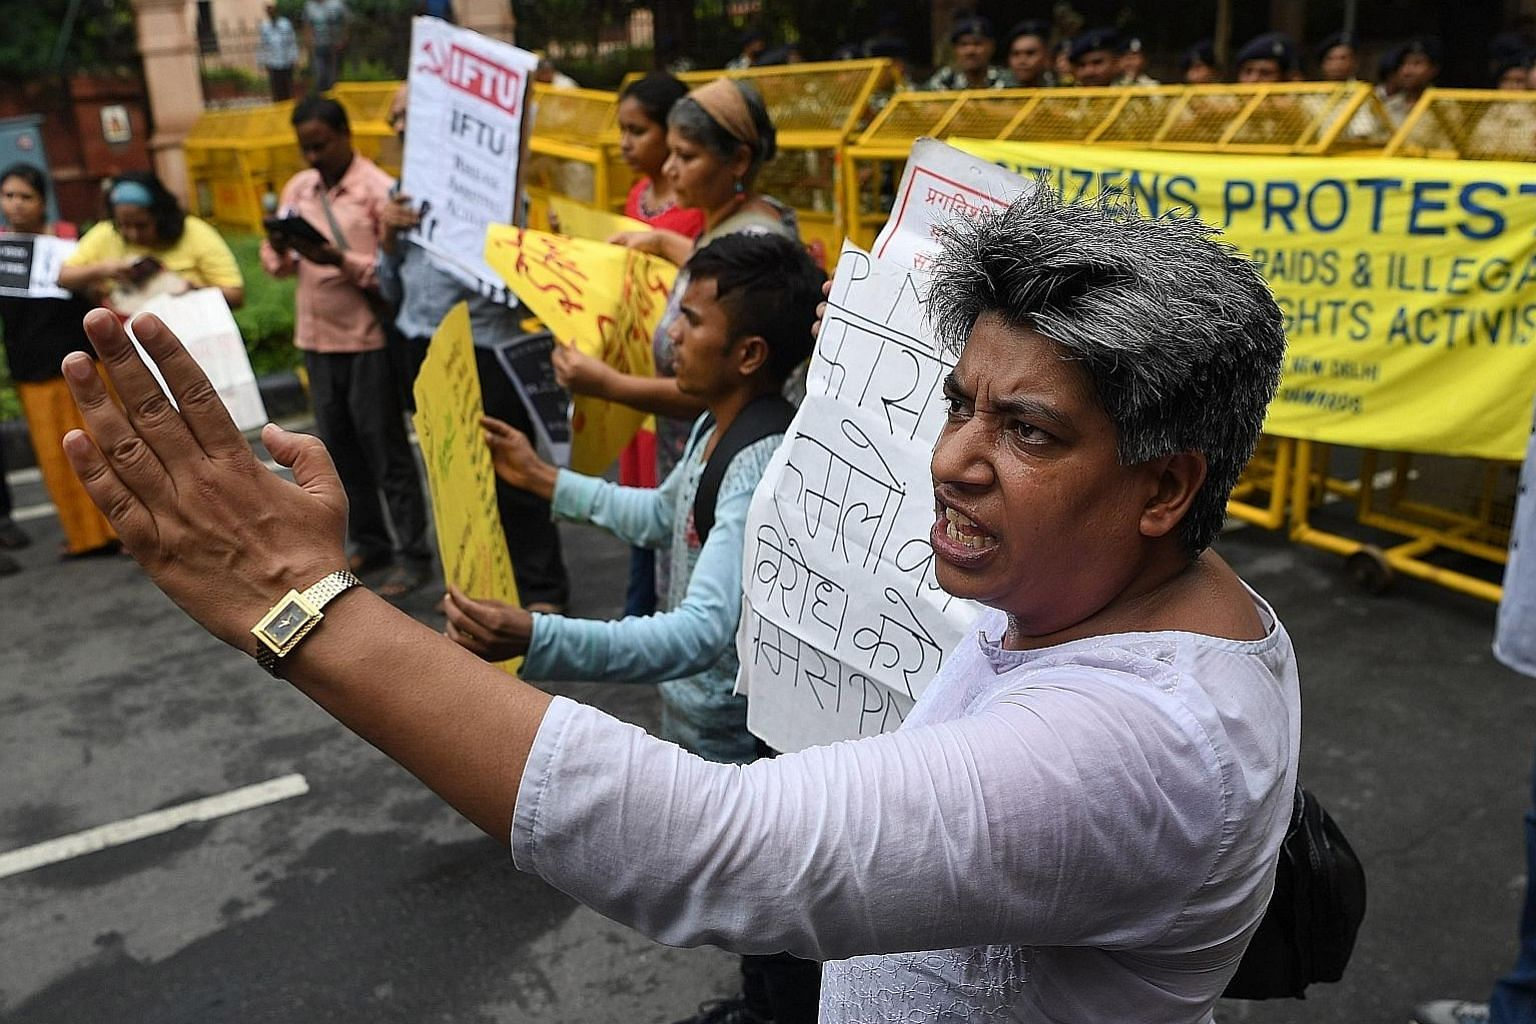 Dalit rights activists, intellectuals and journalists shouting slogans against the police raid and arrests of civil rights activists during a protest in New Delhi on Wednesday.